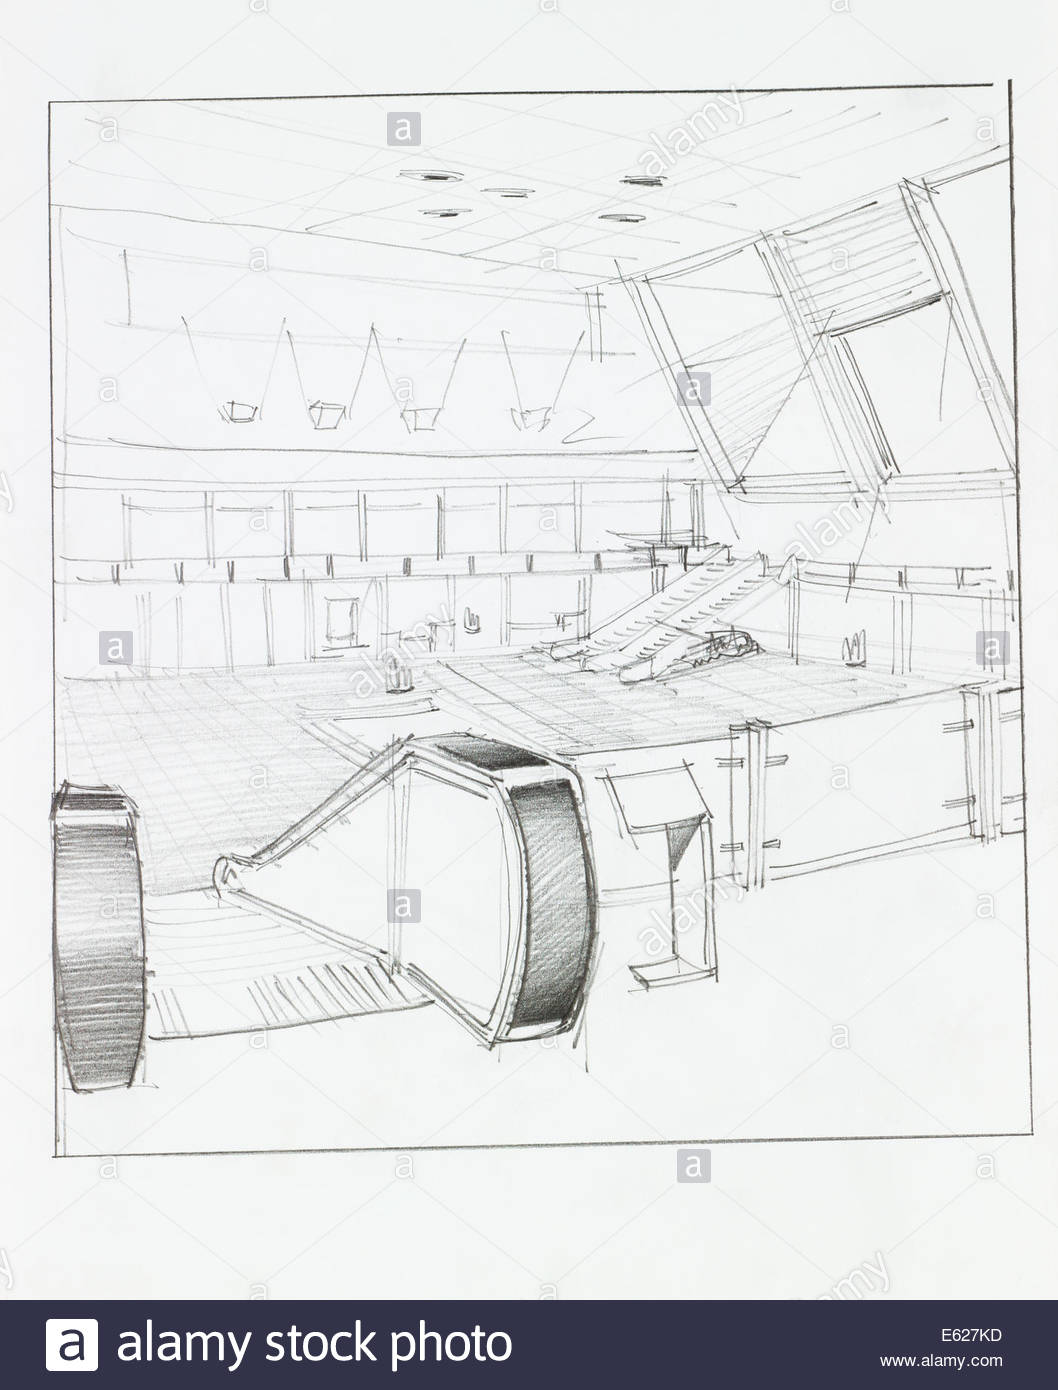 1058x1390 Architectural Perspective Of Interior Airport With Electrical